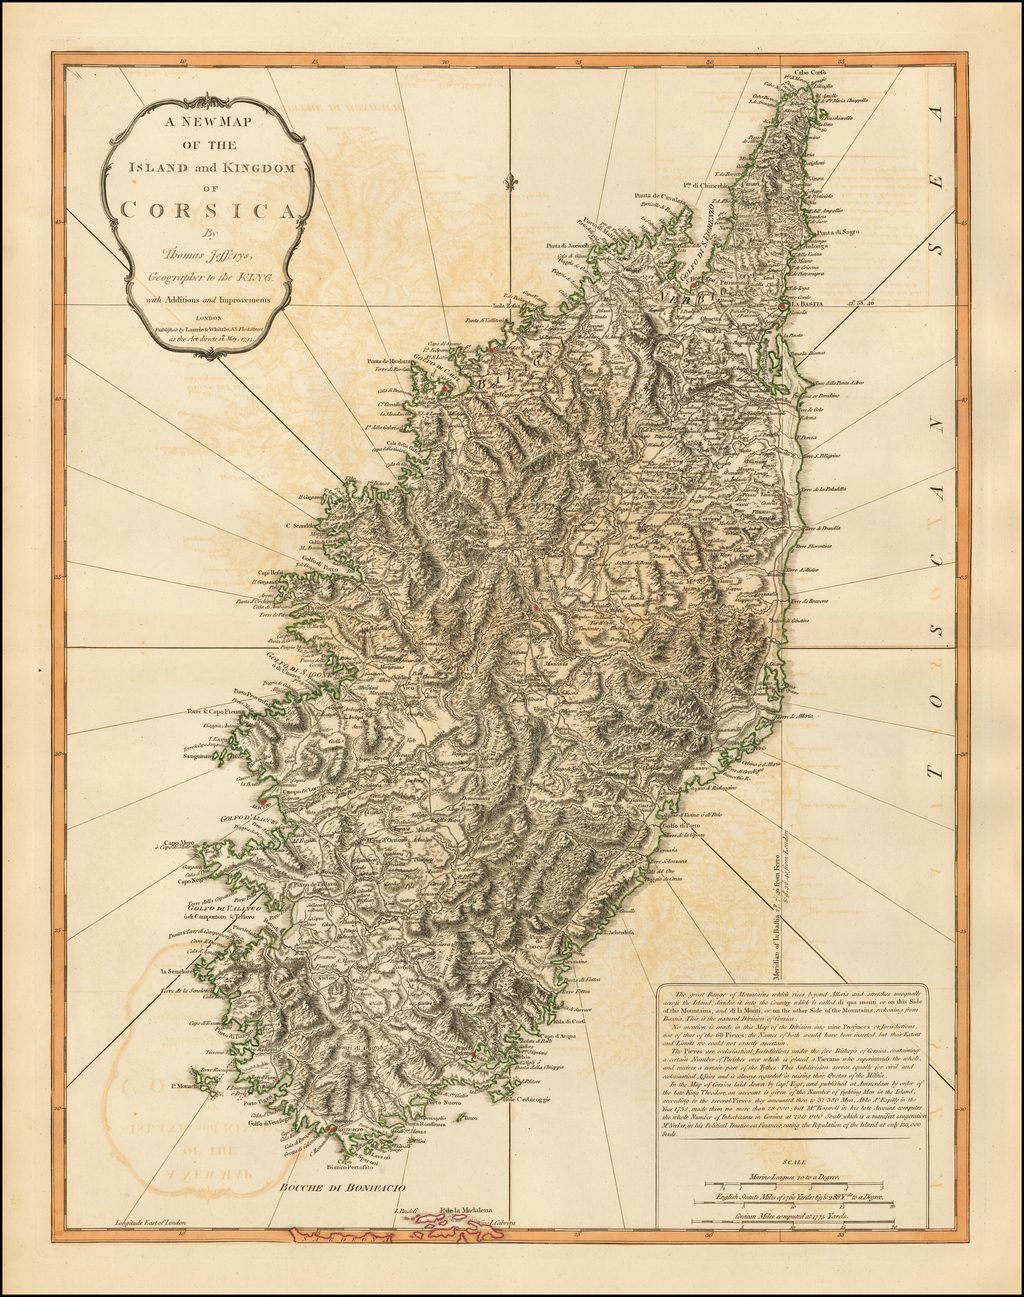 A New Map of the Island and Kingdom of Corsica By Thomas Jefferys, Geographer to the King. By Thomas Jefferys / Laurie & Whittle